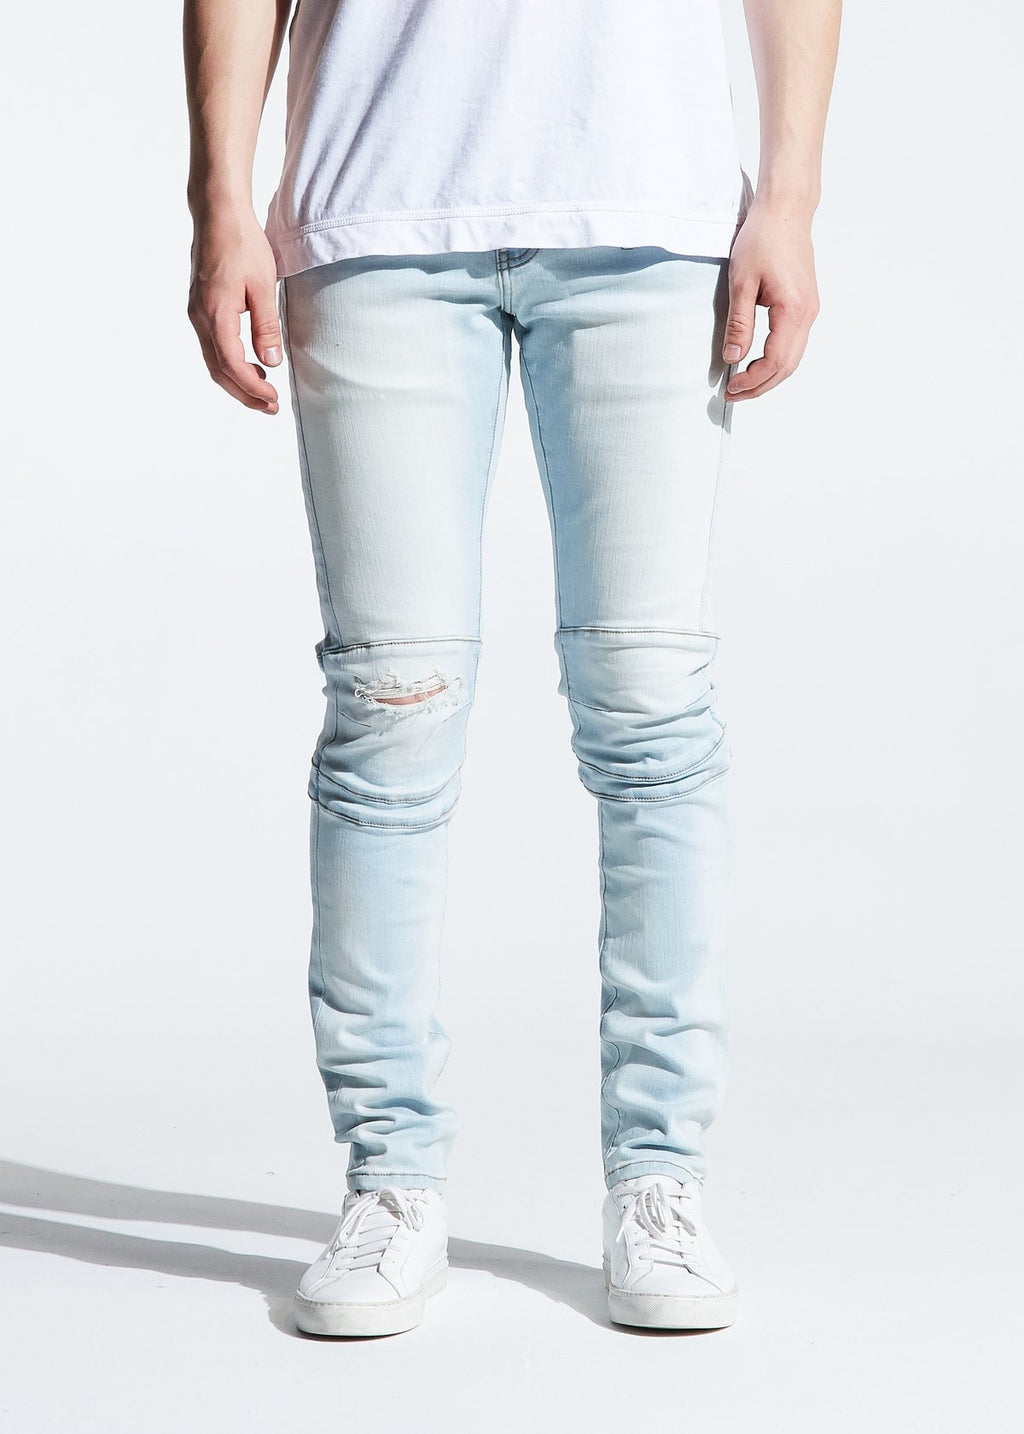 CRYSP HUDSON DENIM (LIGHT BLUE)